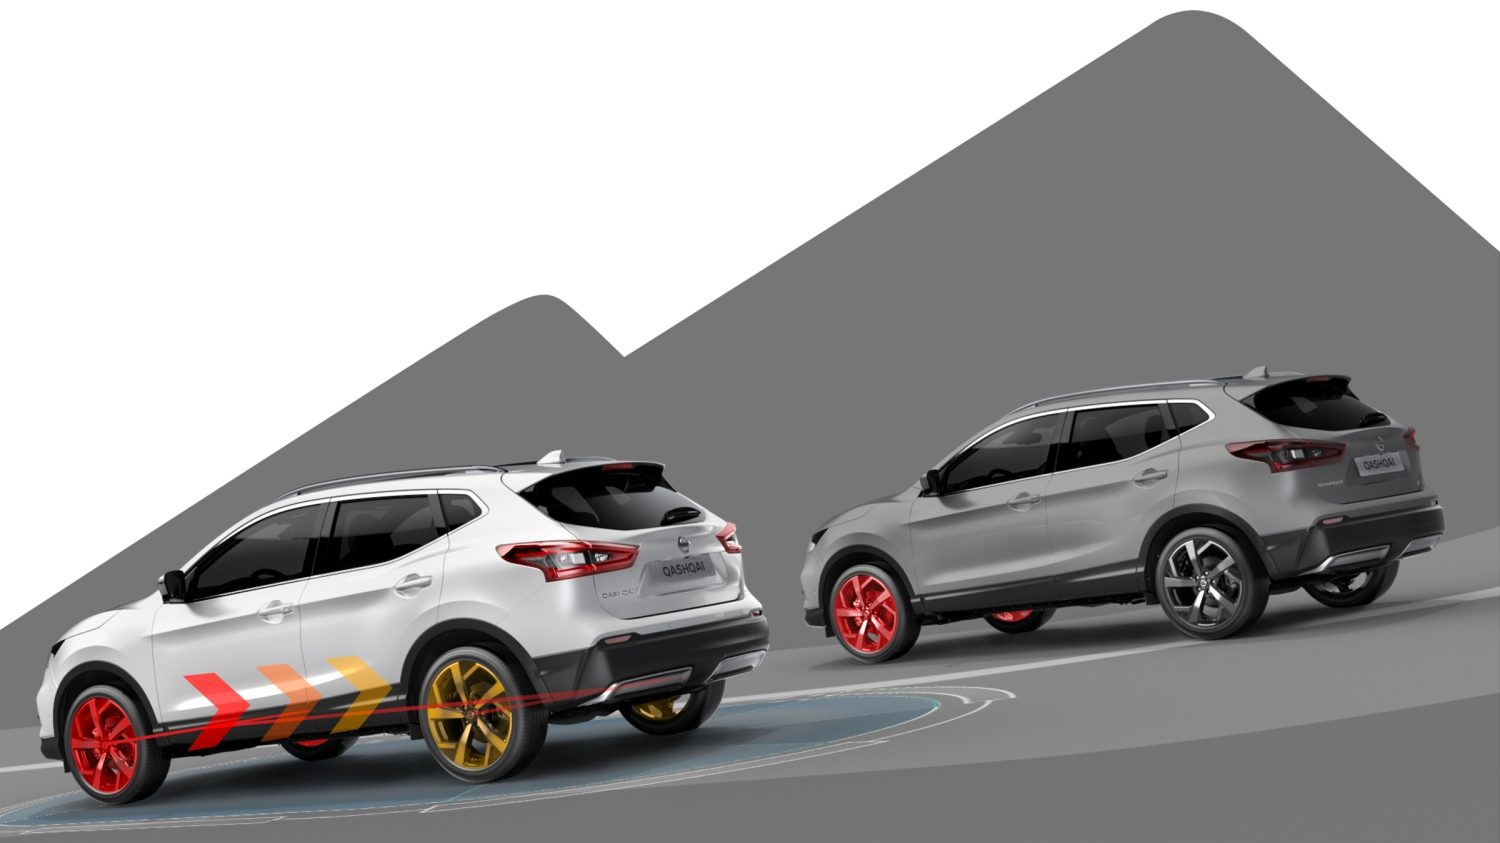 Nissan QASHQAI intelligent 4x4i, illustration